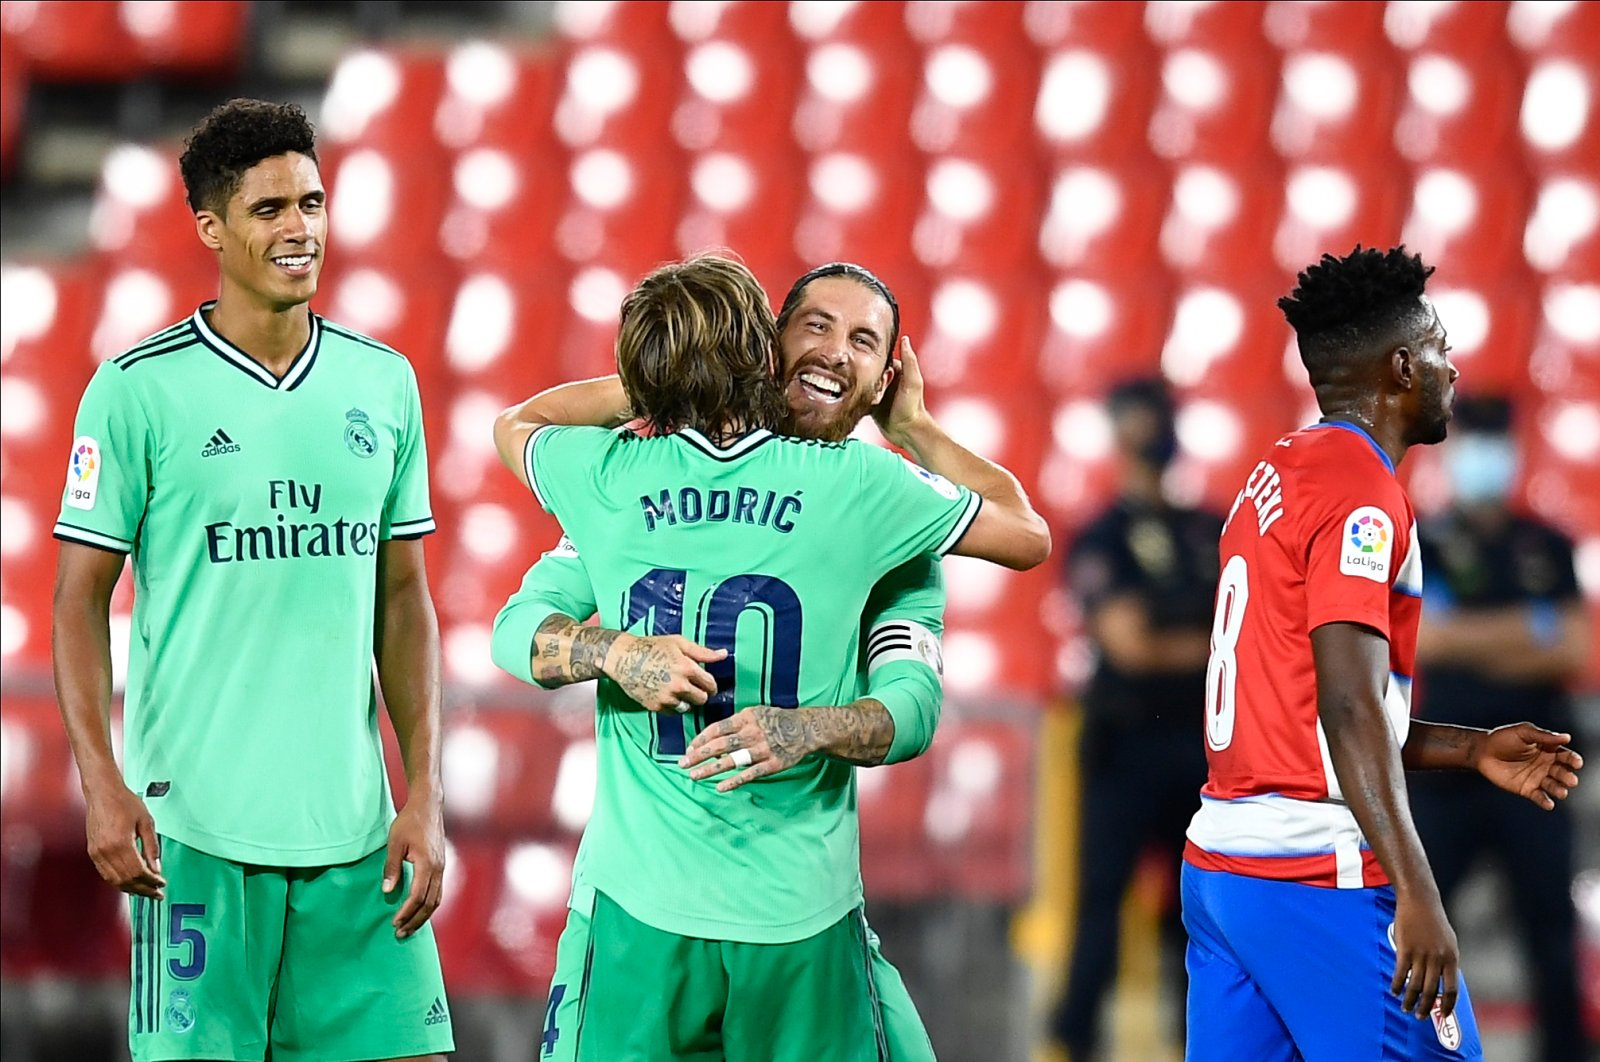 Real Madrid's Sergio Ramos (2nd R) celebrates his team's victory with his teammate Luka Modric during the La Liga match against Granada in Granada, Spain, July 13, 2020. (AP Photo)